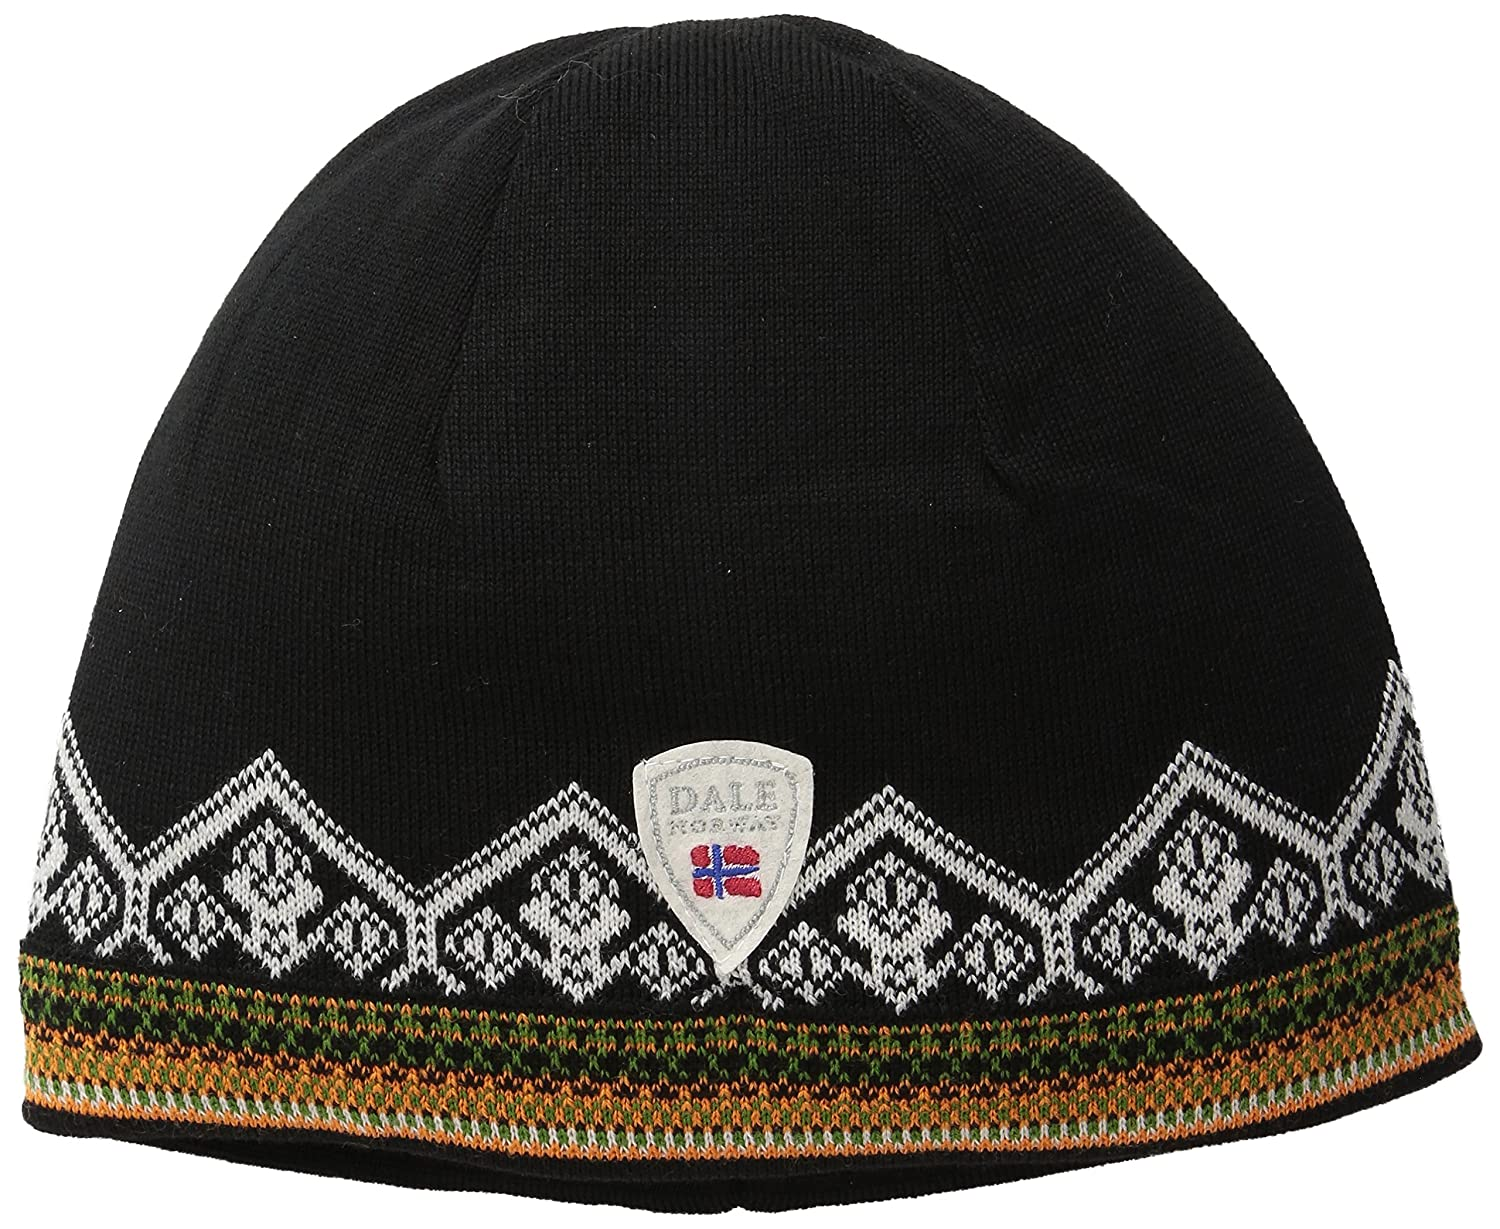 579a816c609 Dale of Norway Lillehammer Hat